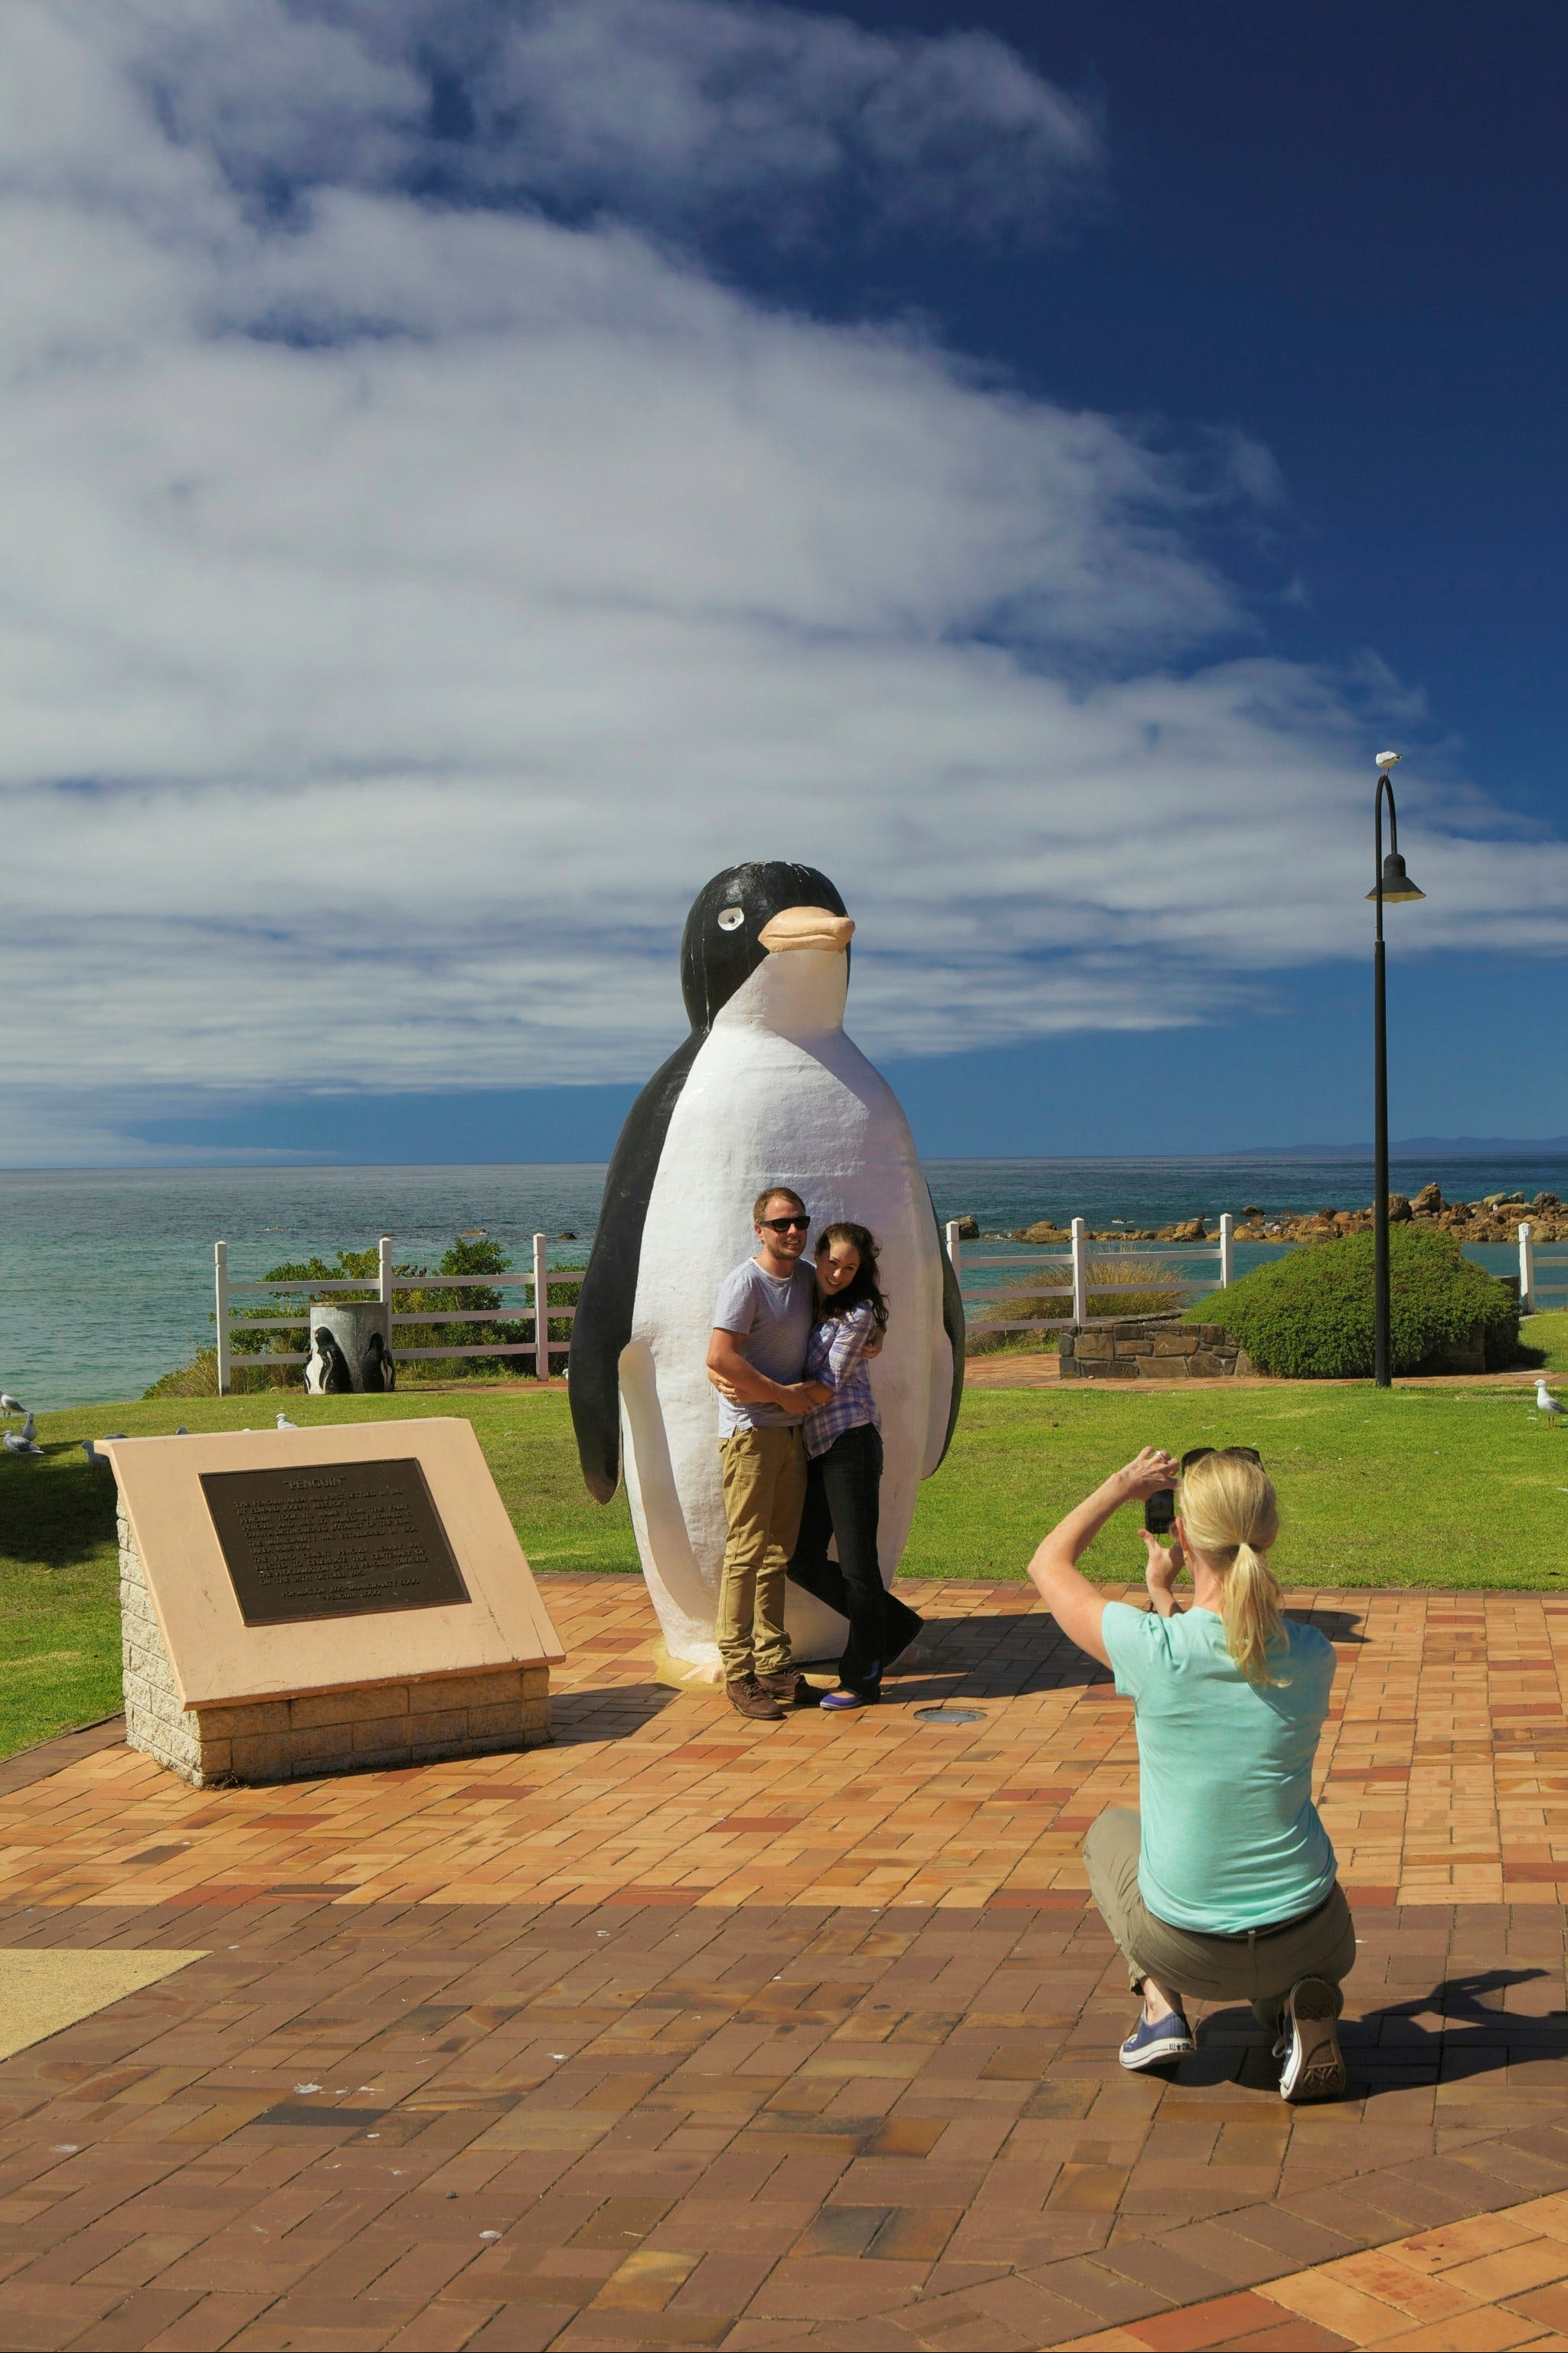 Penguin - Accommodation Perth